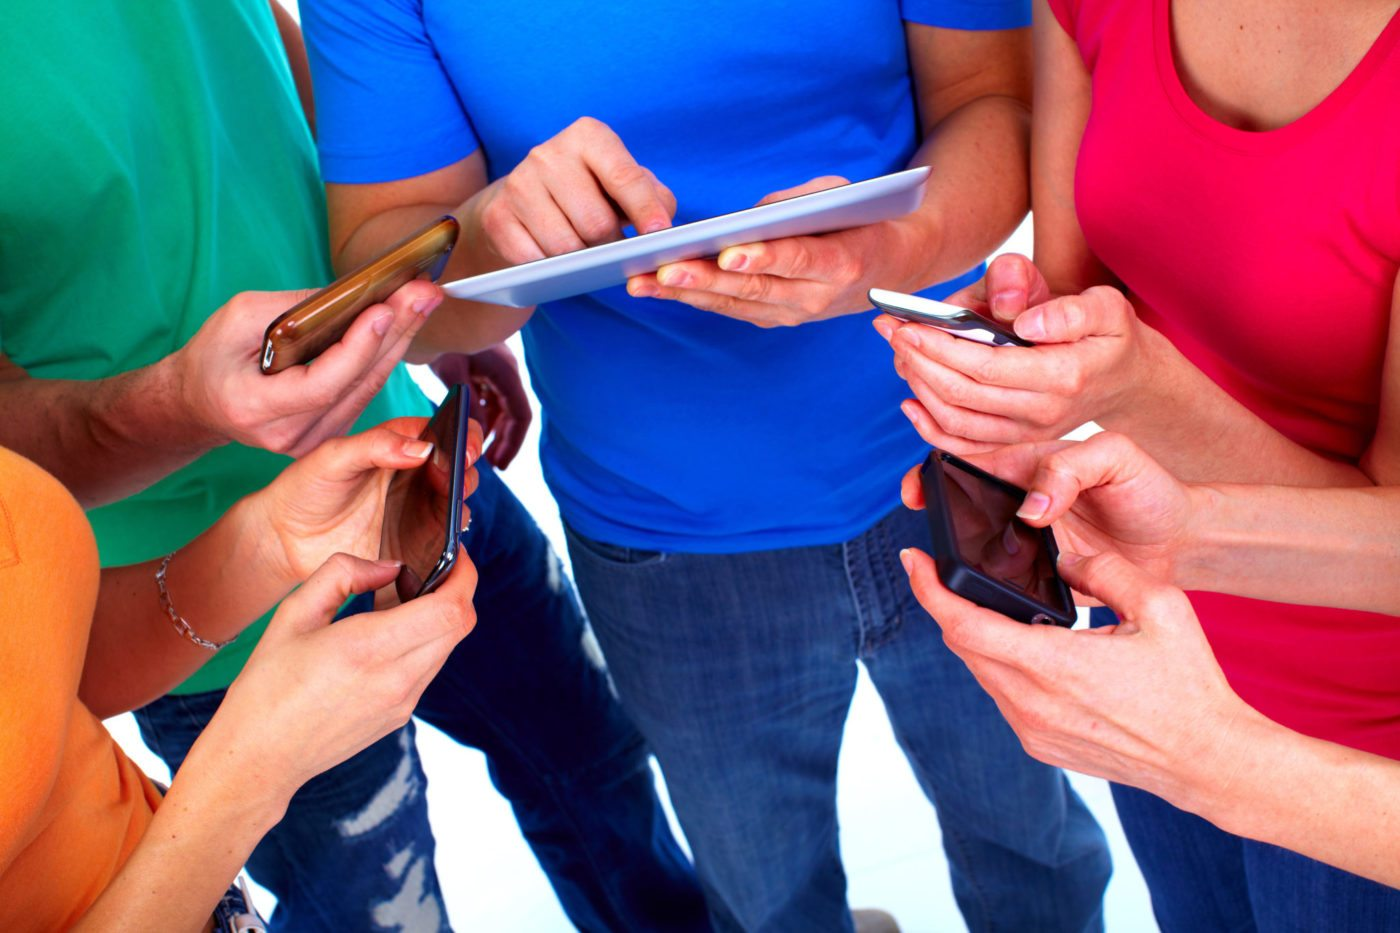 Real estate clients want value, so create a mobile app or help out in the community to earn their referrals